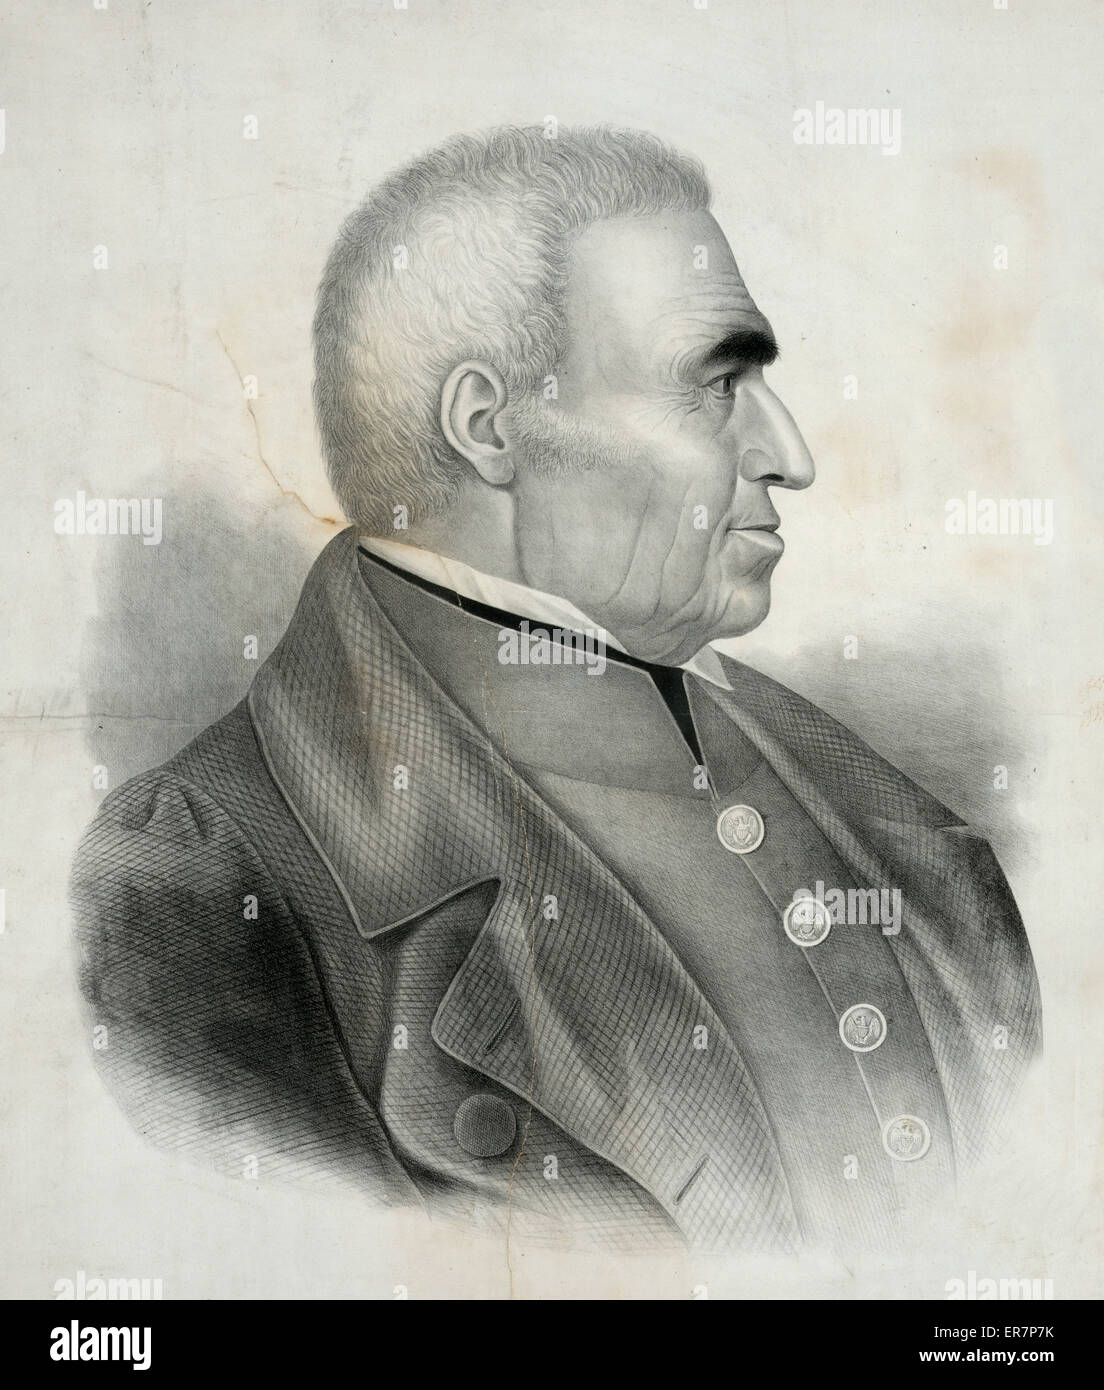 Zachary Taylor, major genl. of the U.S. Army. Print showing Zachary Taylor, head-and-shoulders portrait, right profile. - Stock Image